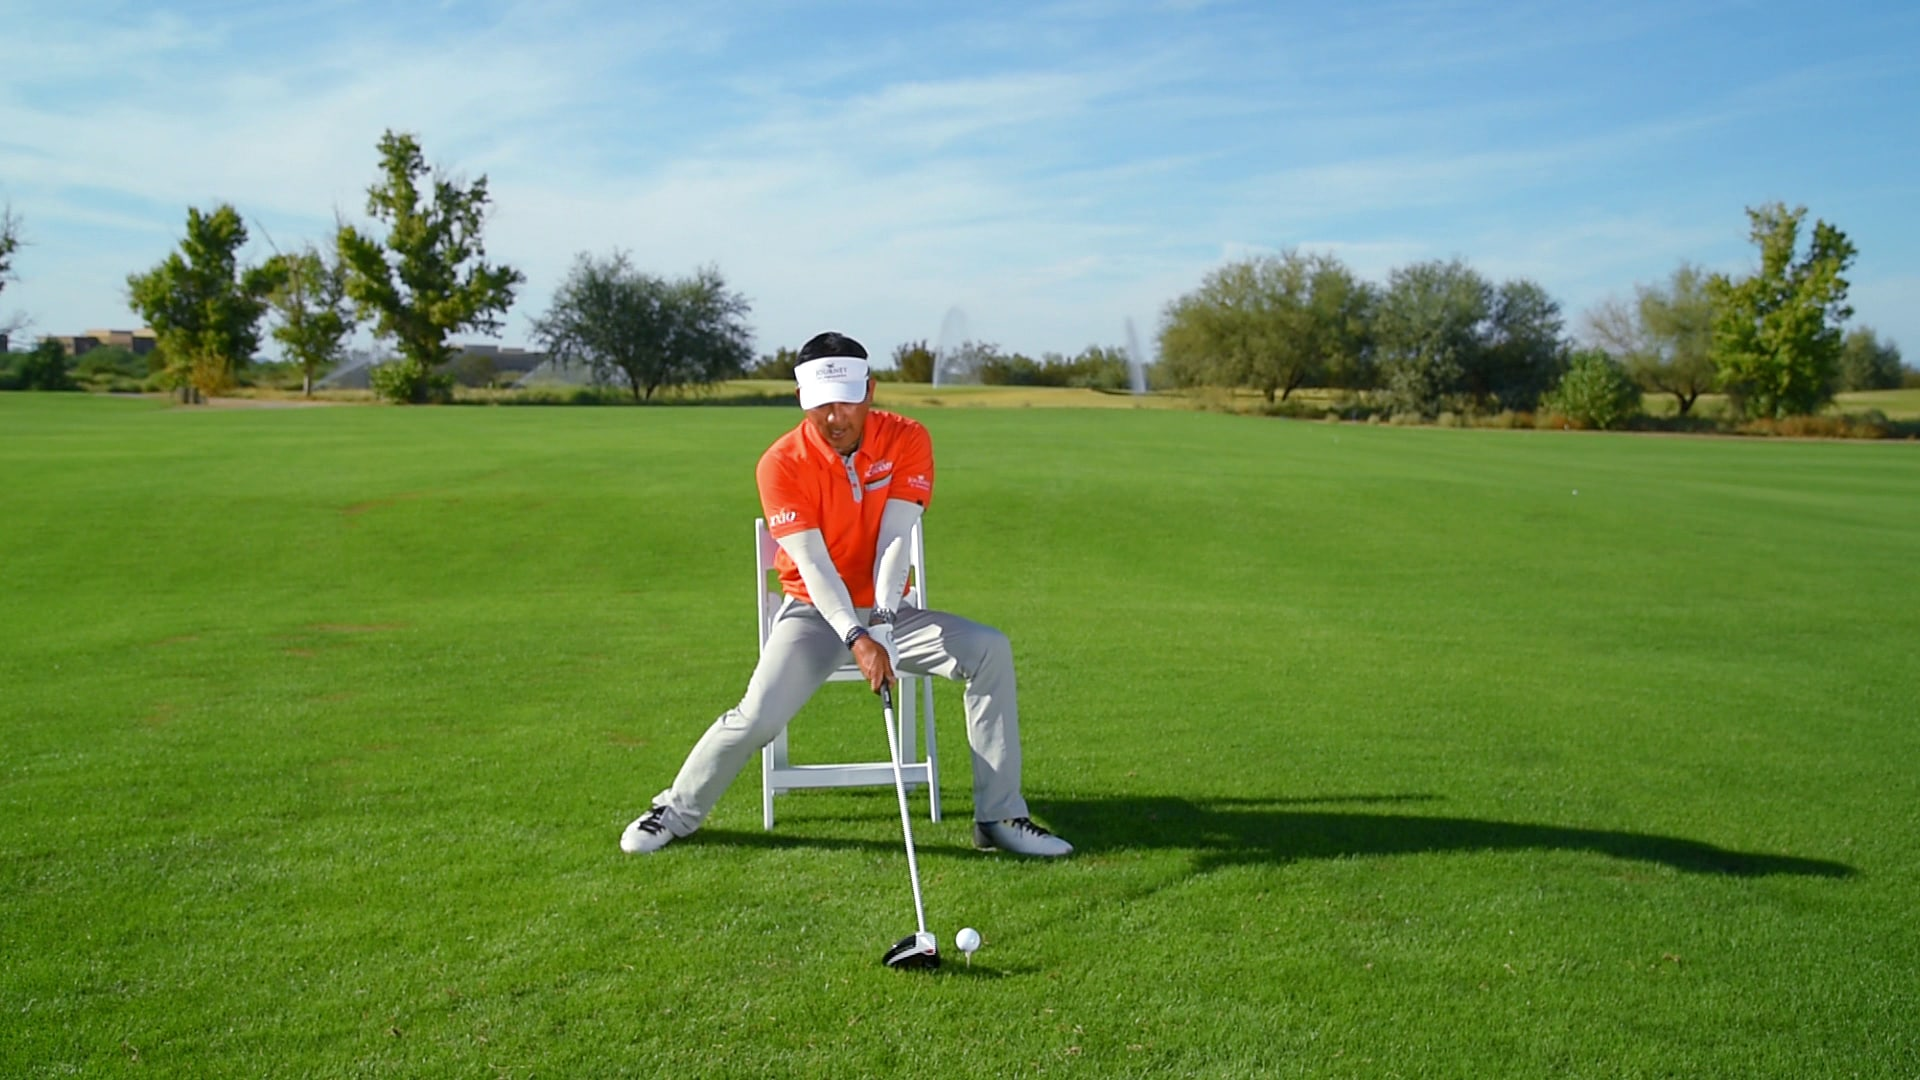 Chang Increase club head speed with chair drillFeb 21 2017 & Randy Chang: Increase club head speed with chair drill | Golf Channel